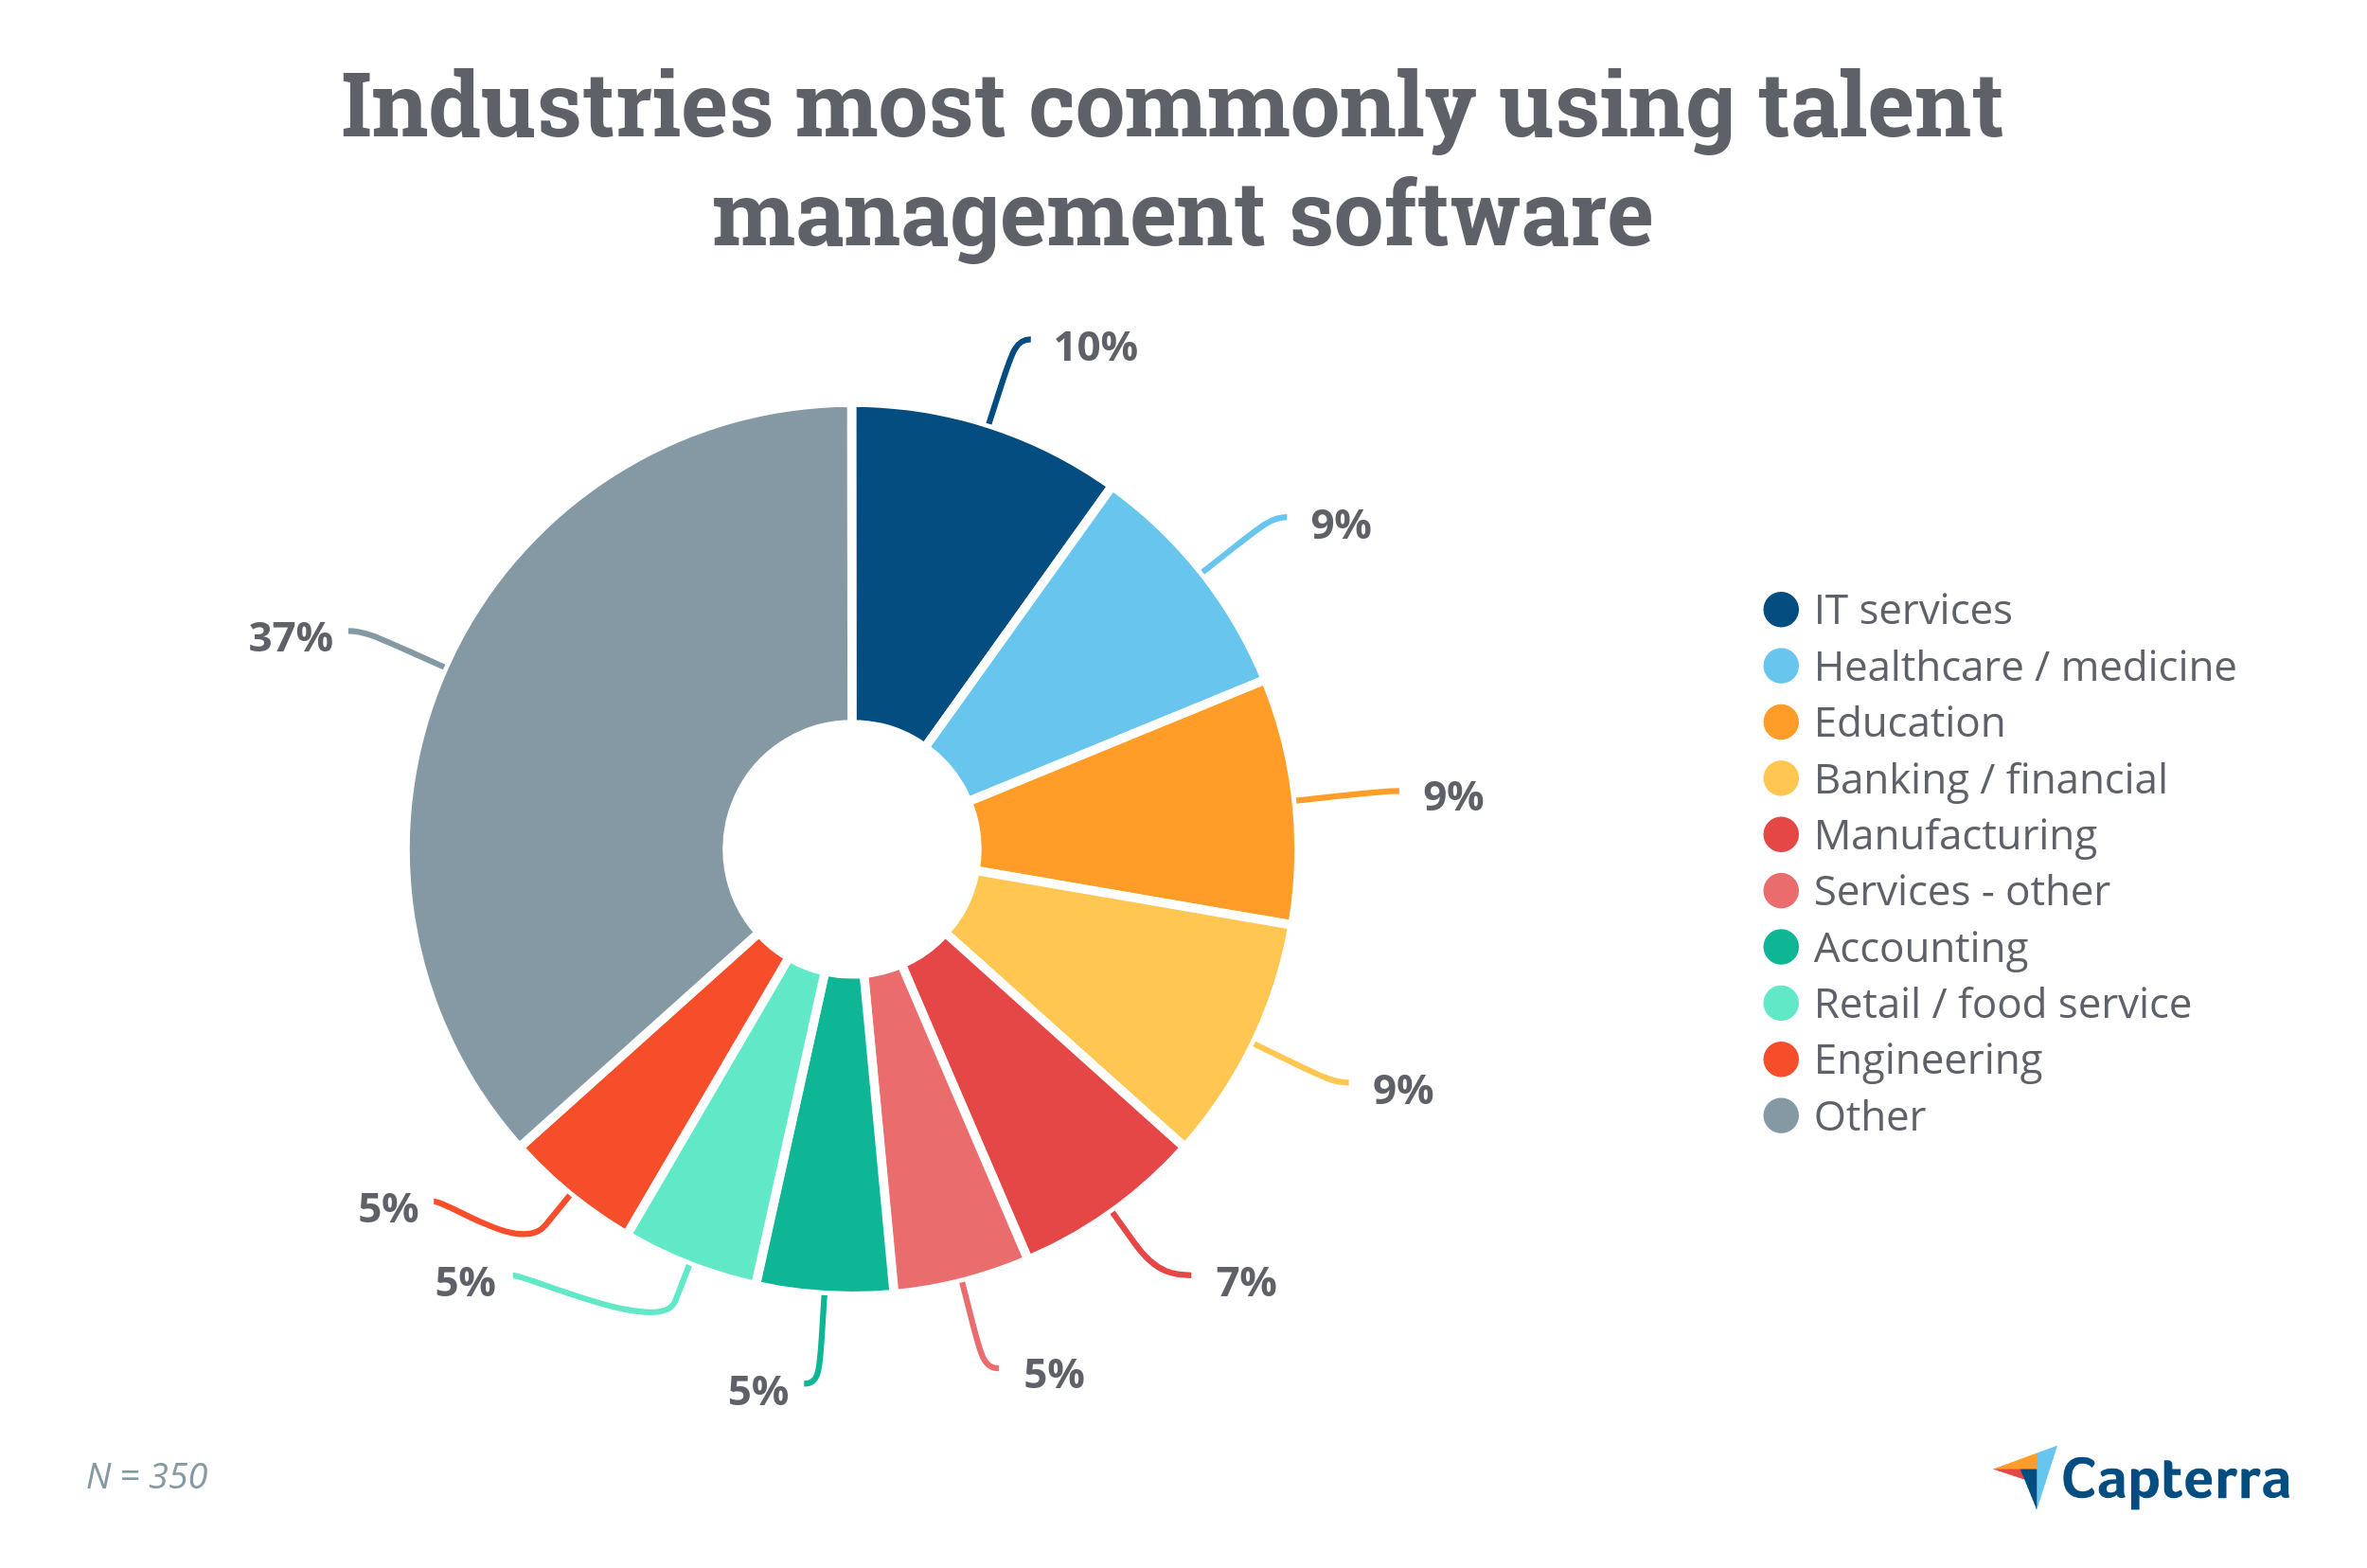 Industries most commonly using talent management software